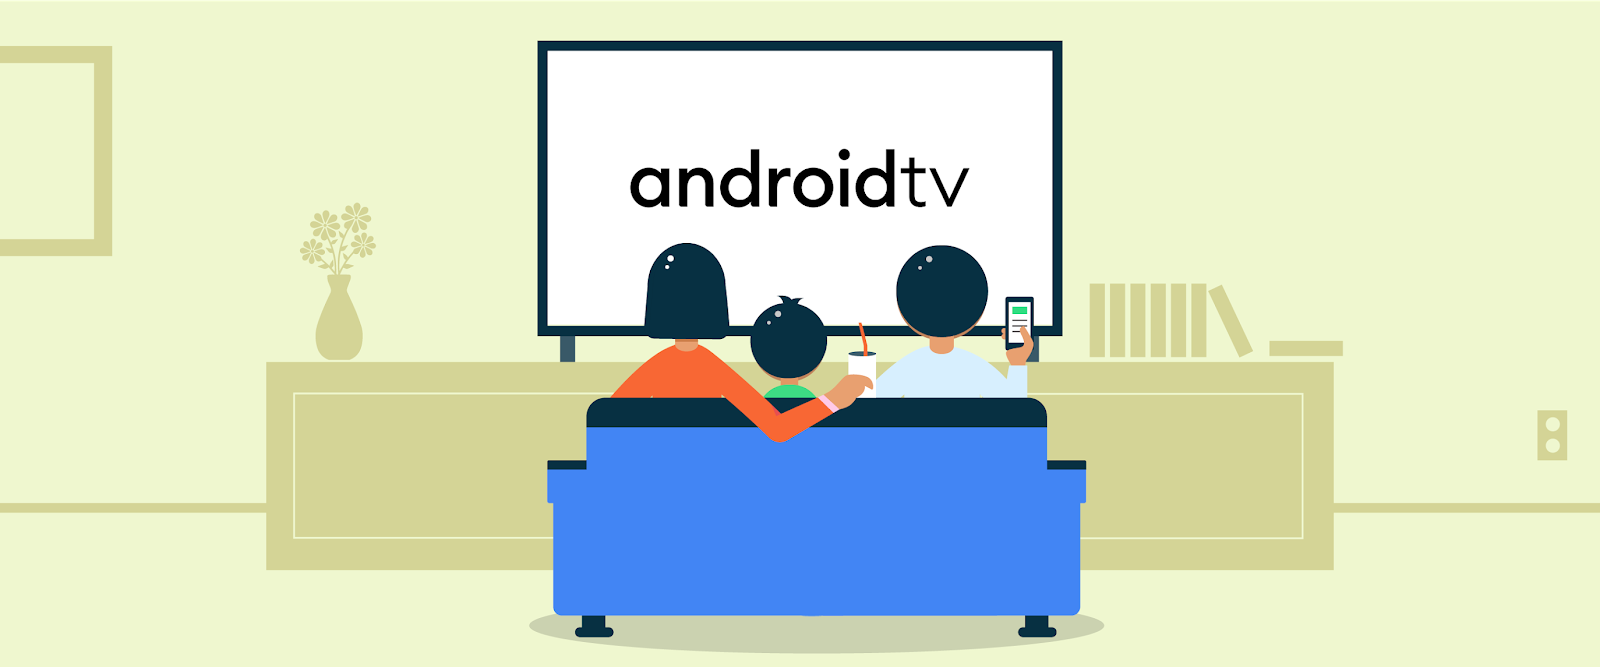 Android TV graphic